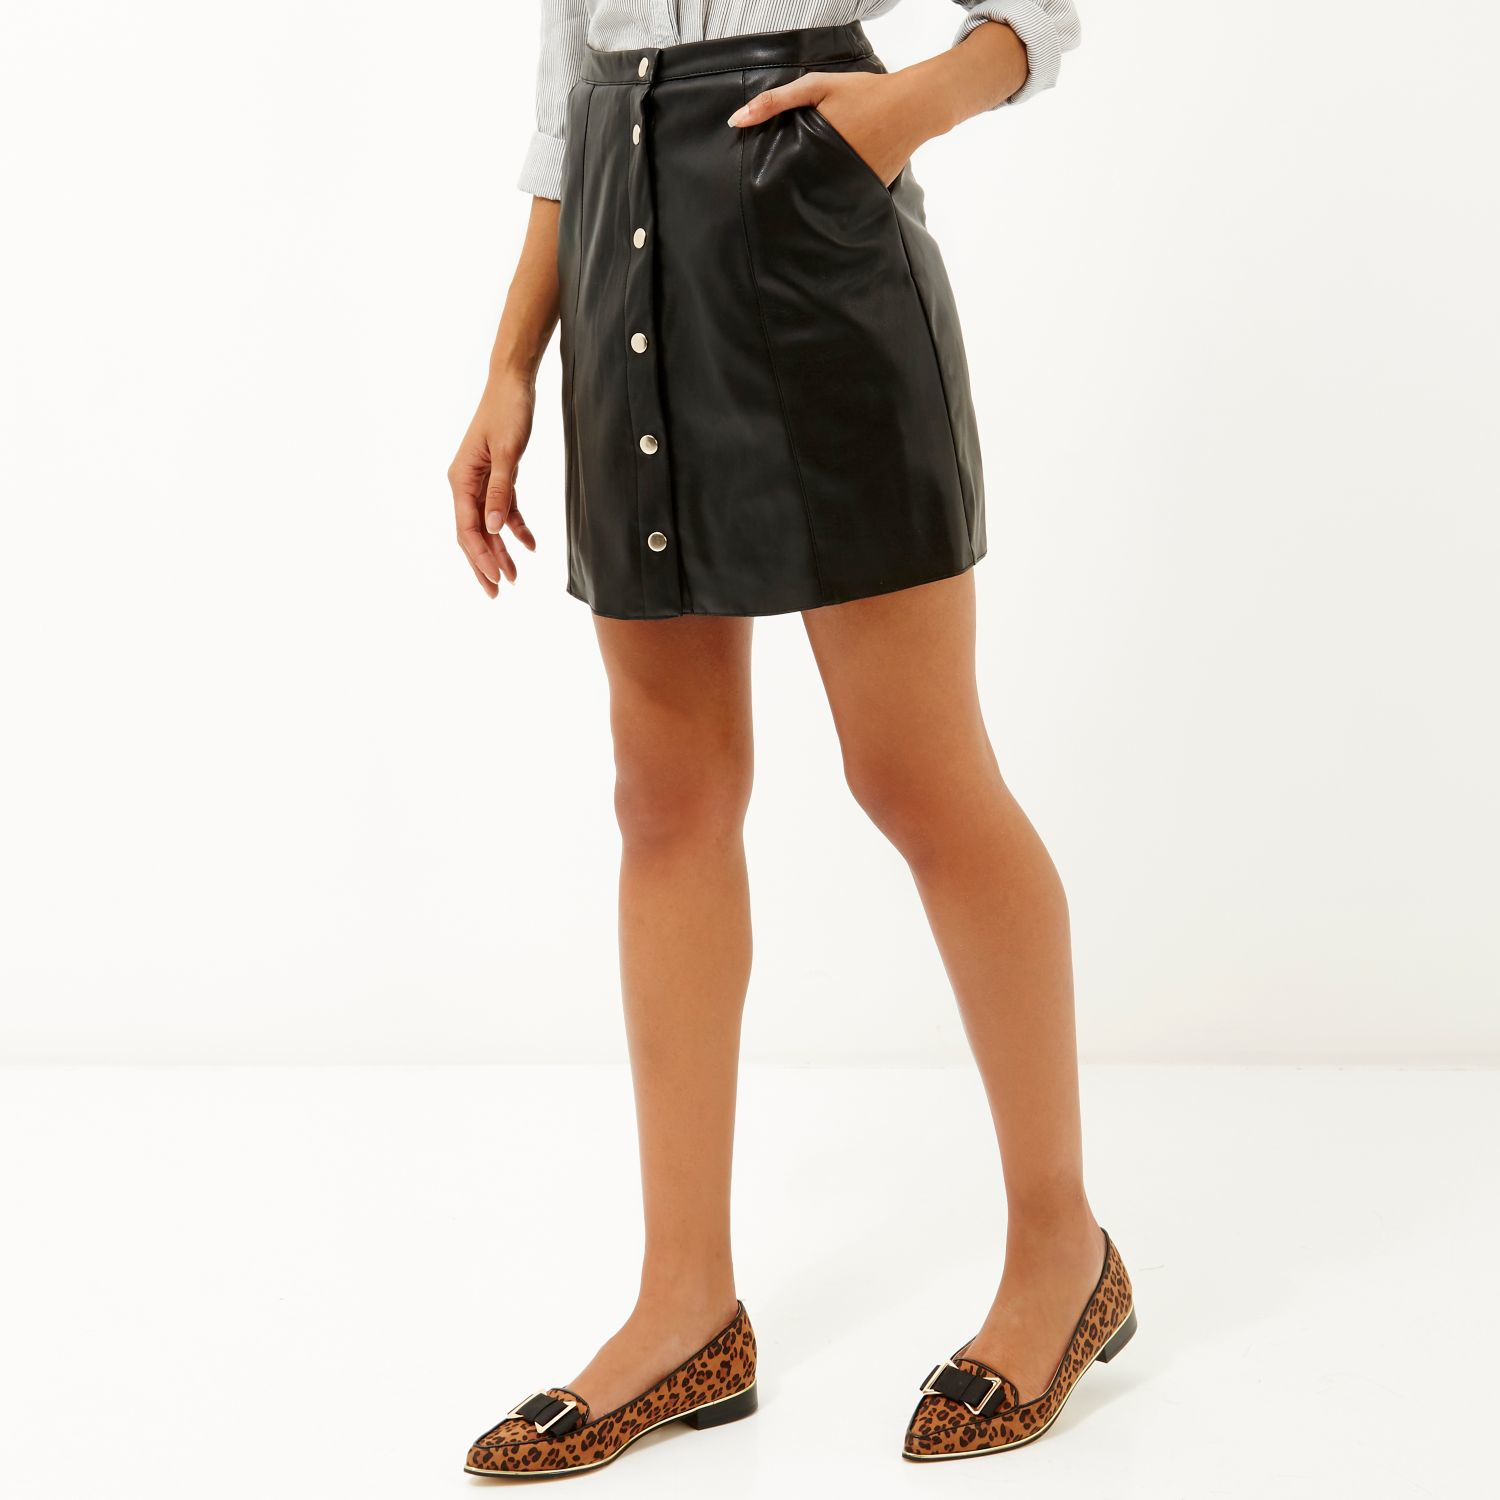 River island Black Leather-look Button-up Skirt in Black | Lyst